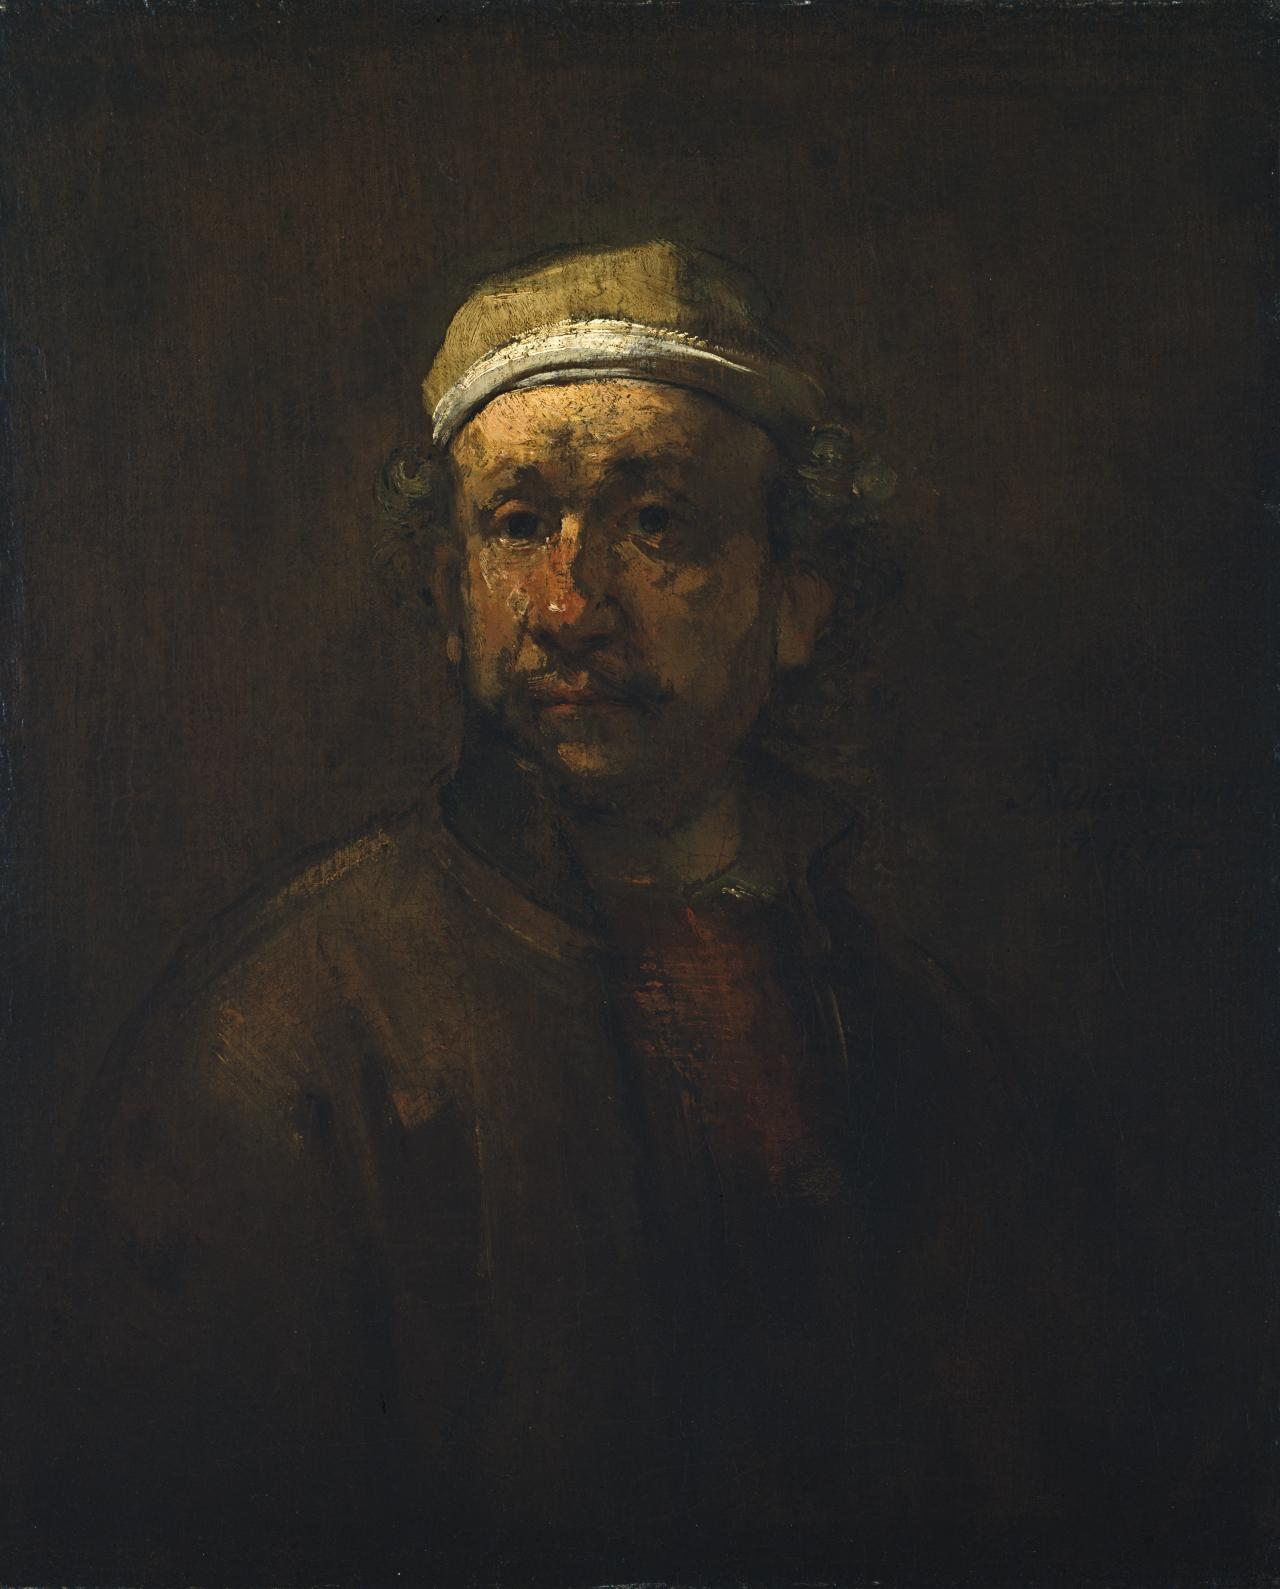 rembrandt by himself a brief history of the melbourne portrait 1 unknown artist in the manner of rembrandt van rijn